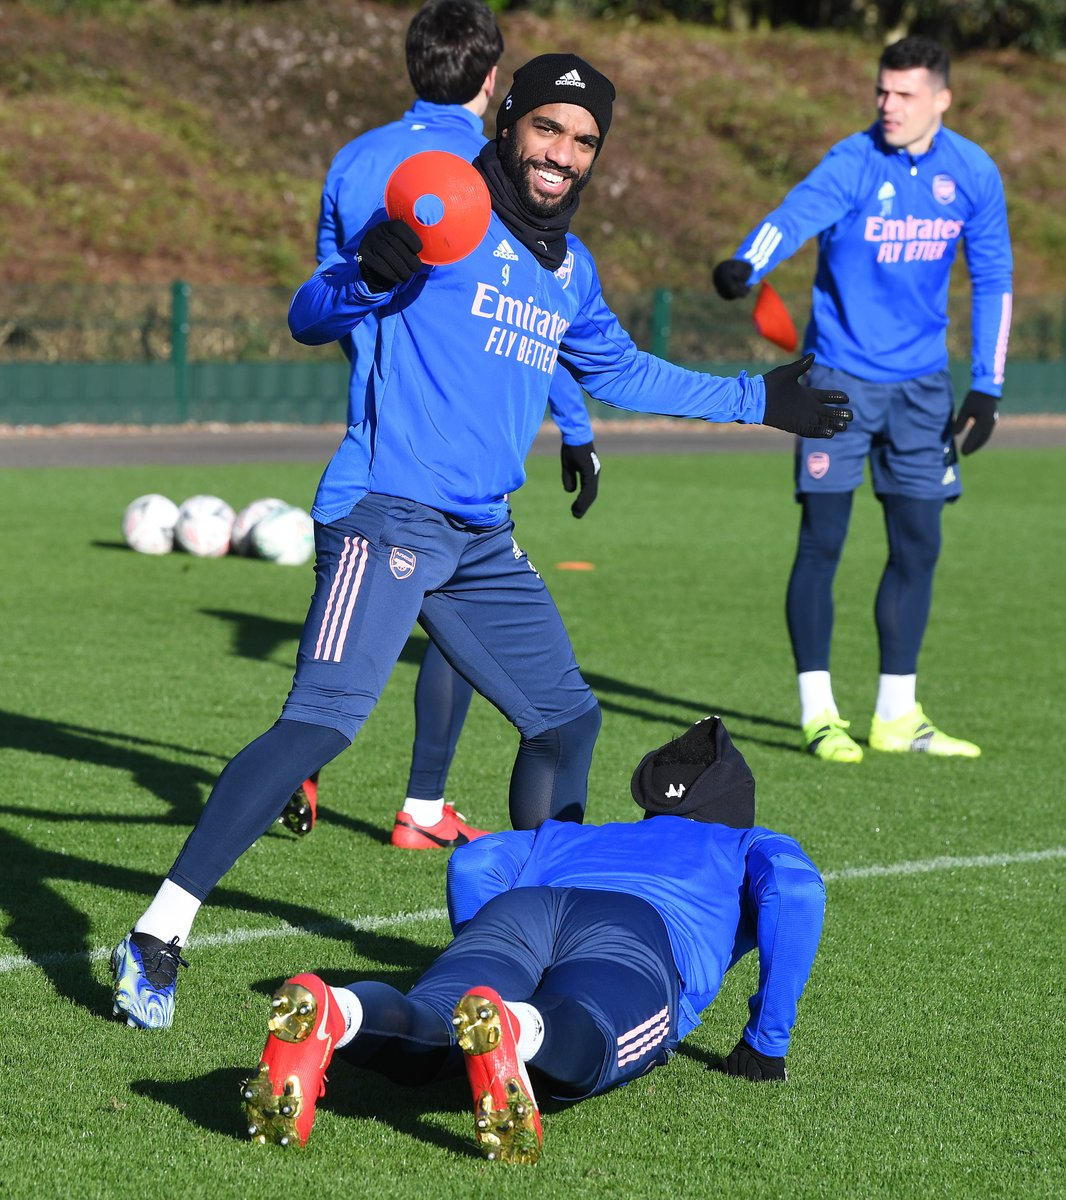 Pictures from today's training session #facup #arsenal